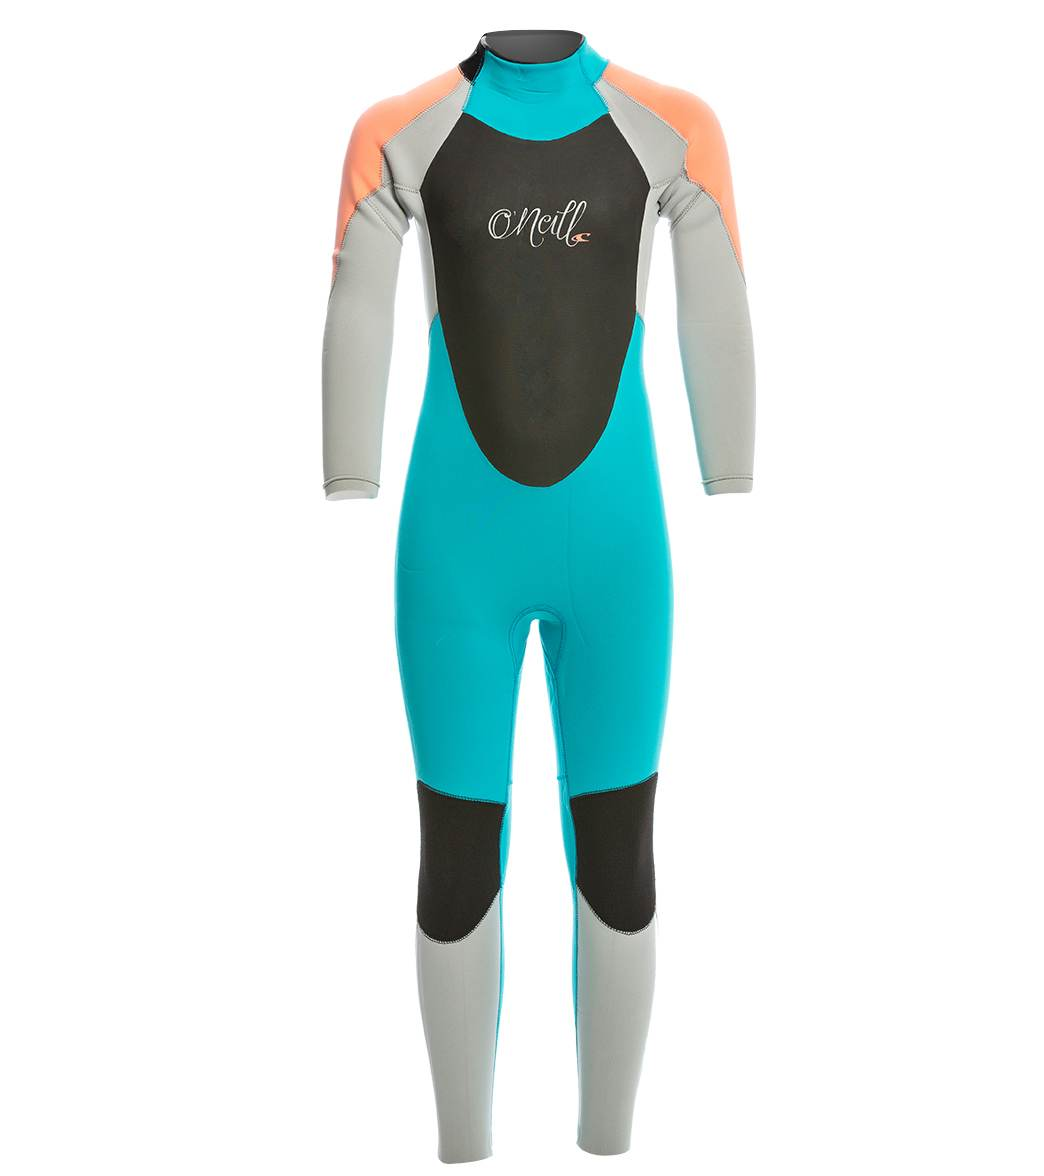 d67e1ddf9fc26 O'Neill Girls' Epic-2 3/2 CT Wetsuit at SwimOutlet.com - Free Shipping